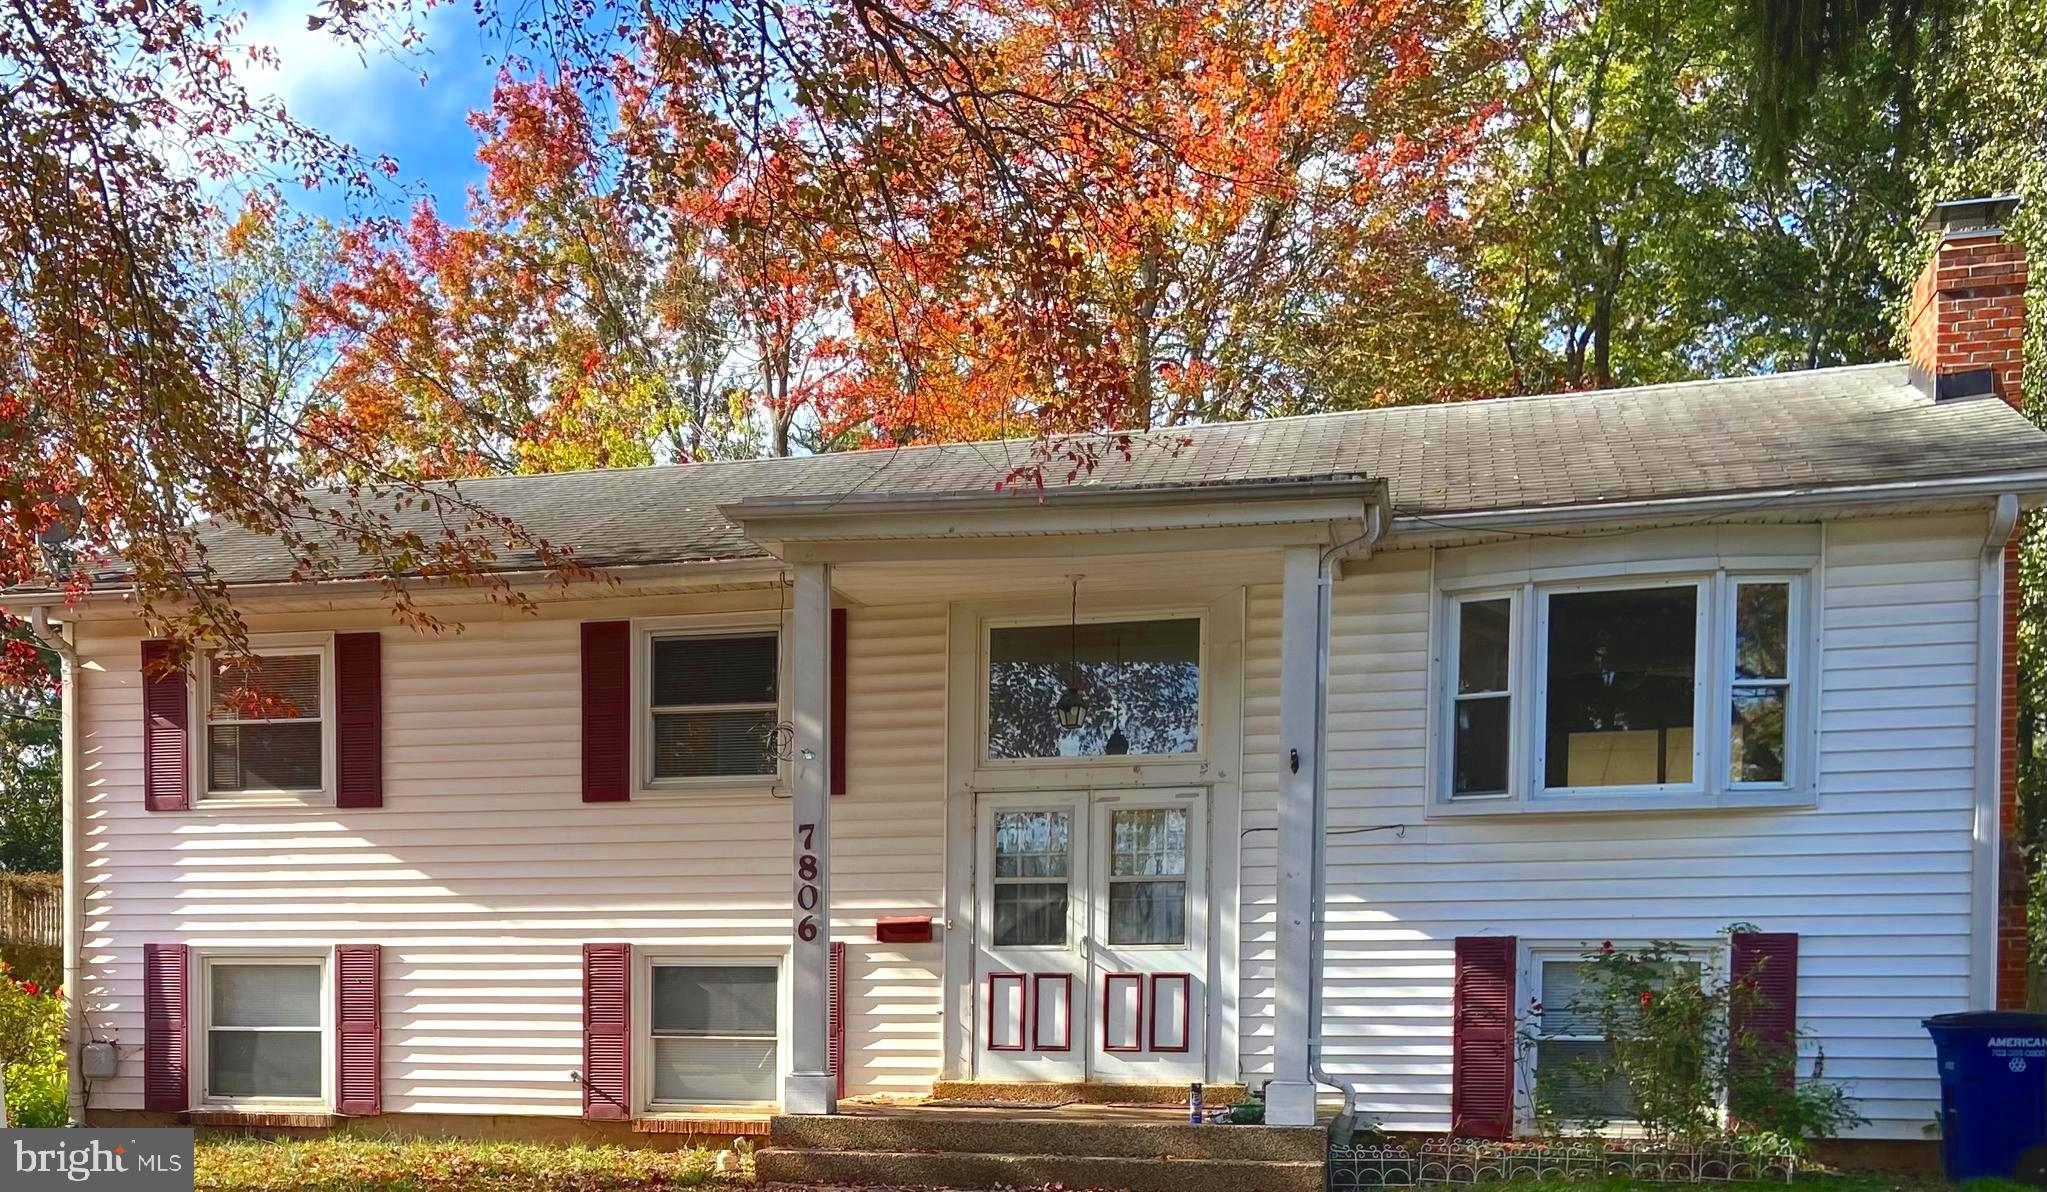 Split foyer home with 4 bedrooms, and 3 full baths. The main level has 3 bedrooms, 2 full baths, liv